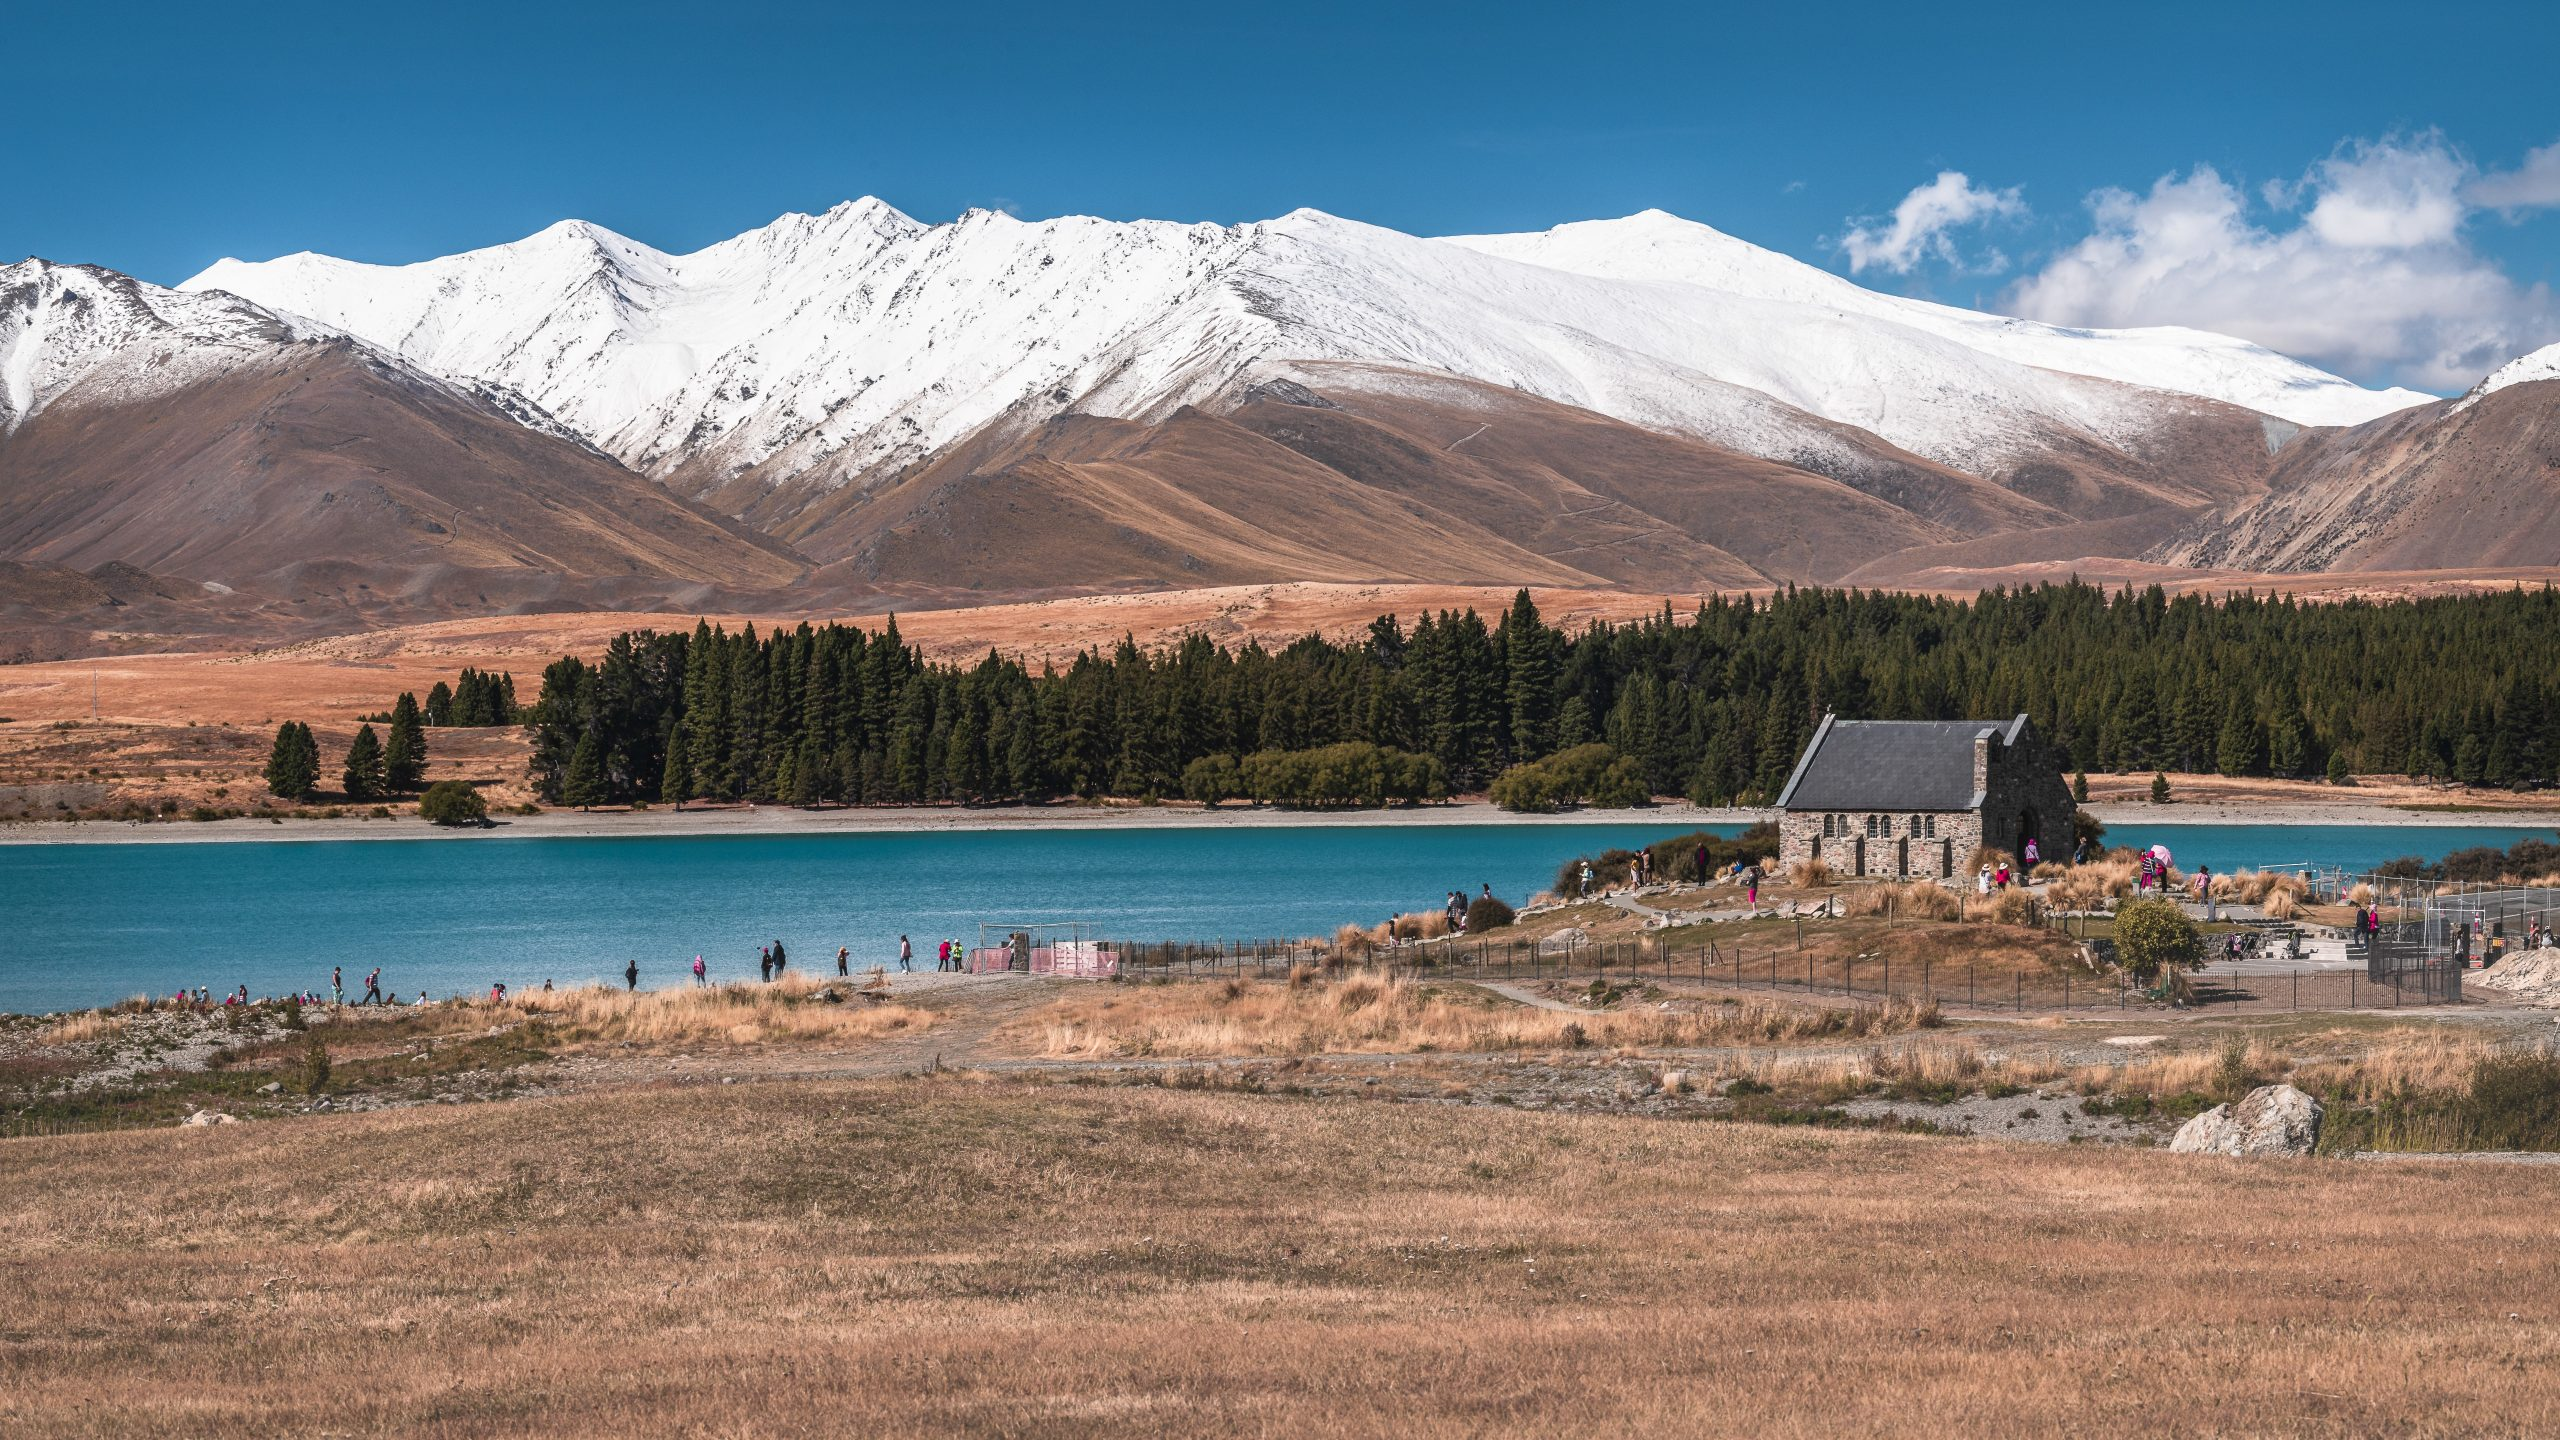 beautiful view of a wedding church near the lake tekapo in new zealand